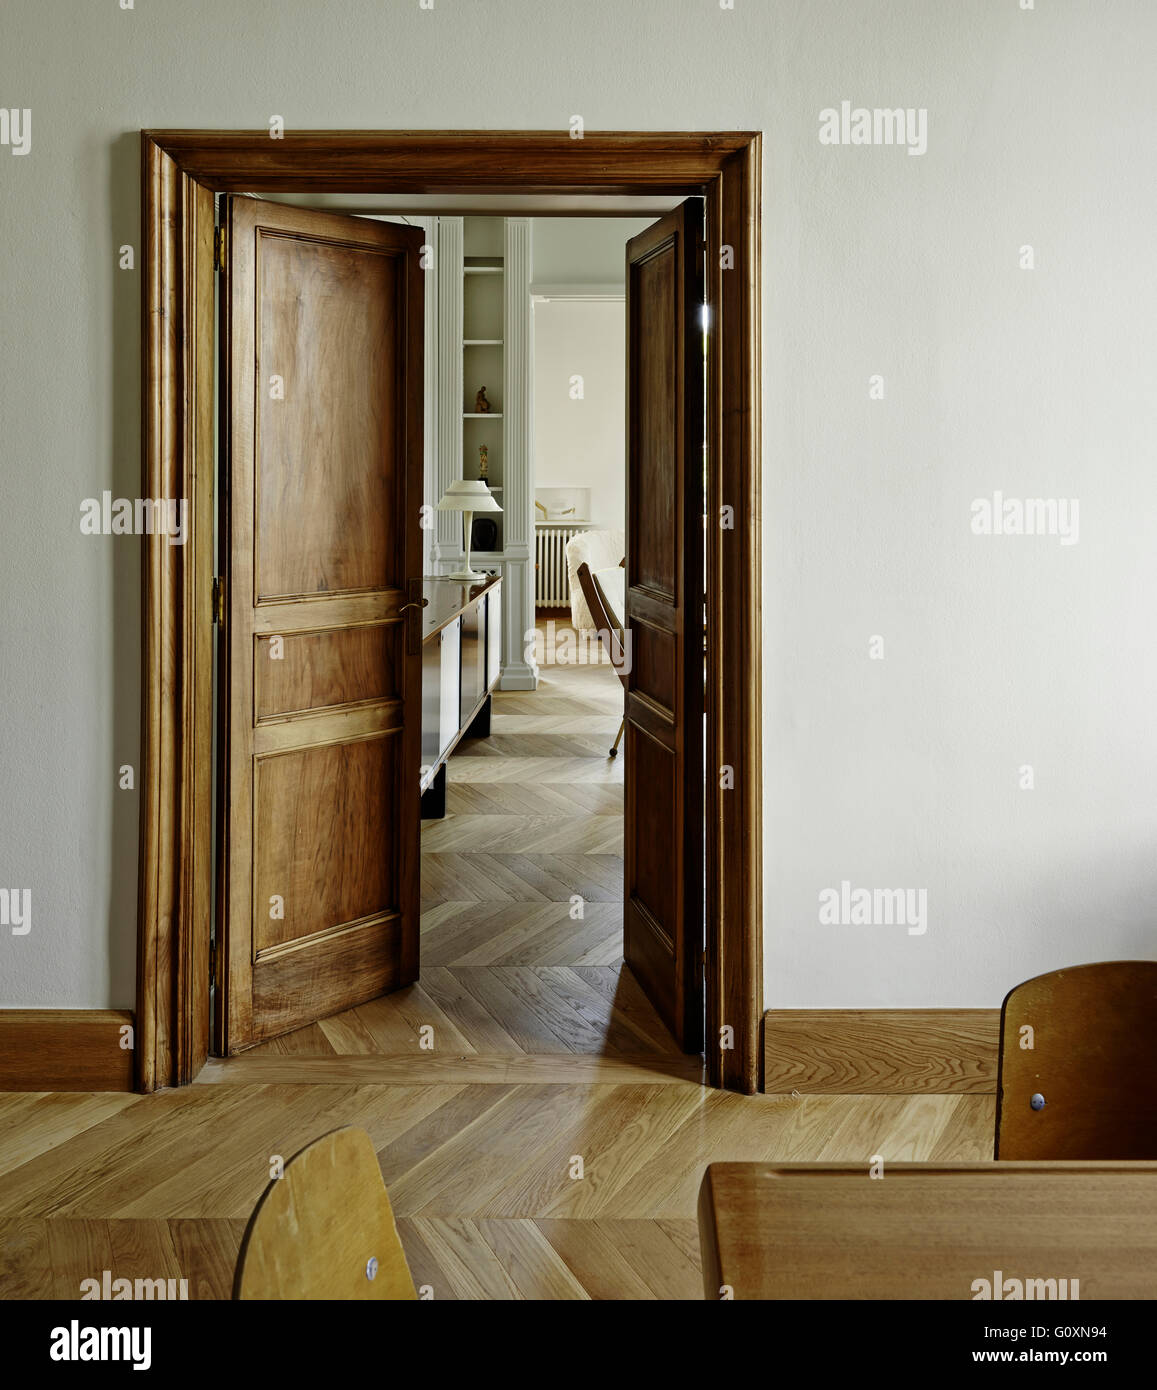 Partial view of a living room through an opened door with parquet flooring and a retro side table with table l&. & Partial view of a living room through an opened door with parquet ...